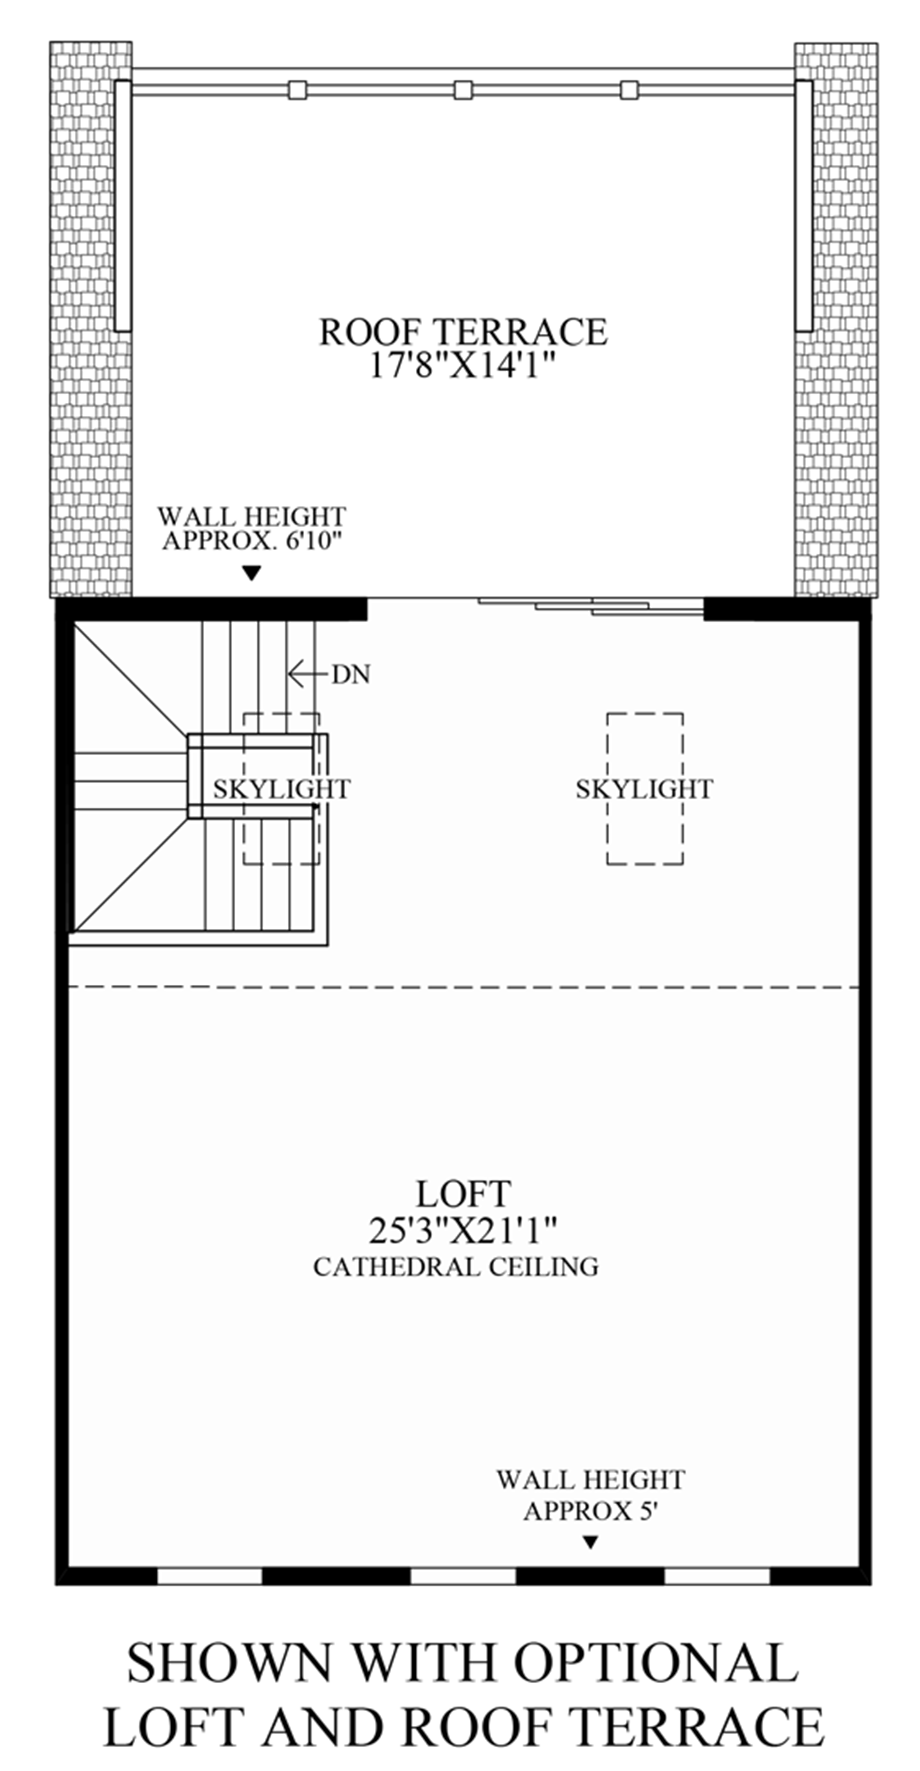 Optional Roof Terrace Floor Plan